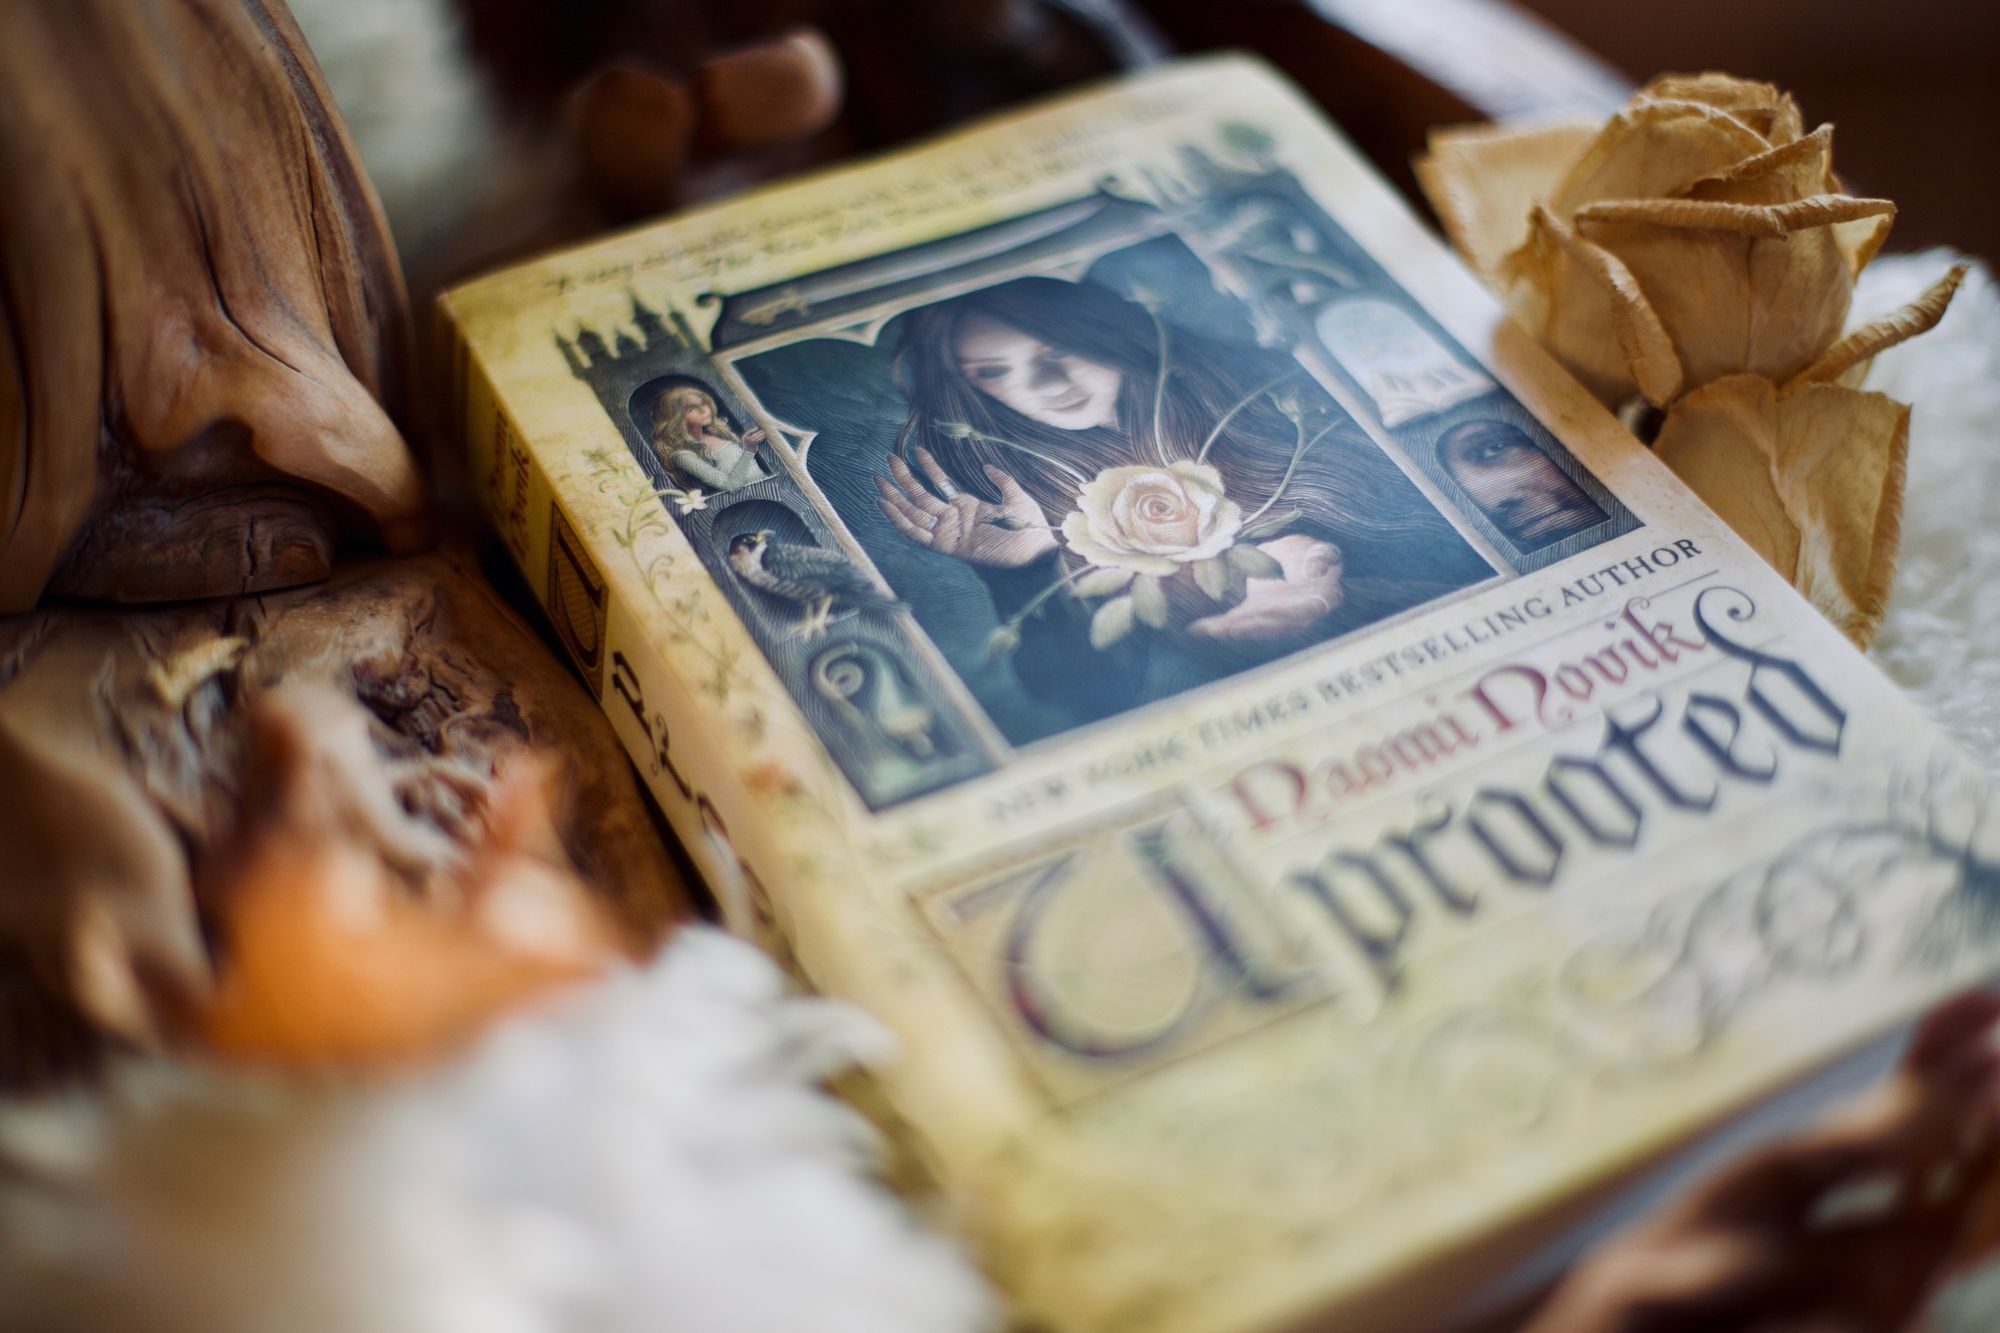 A close-up photo of Uprooted, a book by Naomi Novik. Next to it is a dried rose.